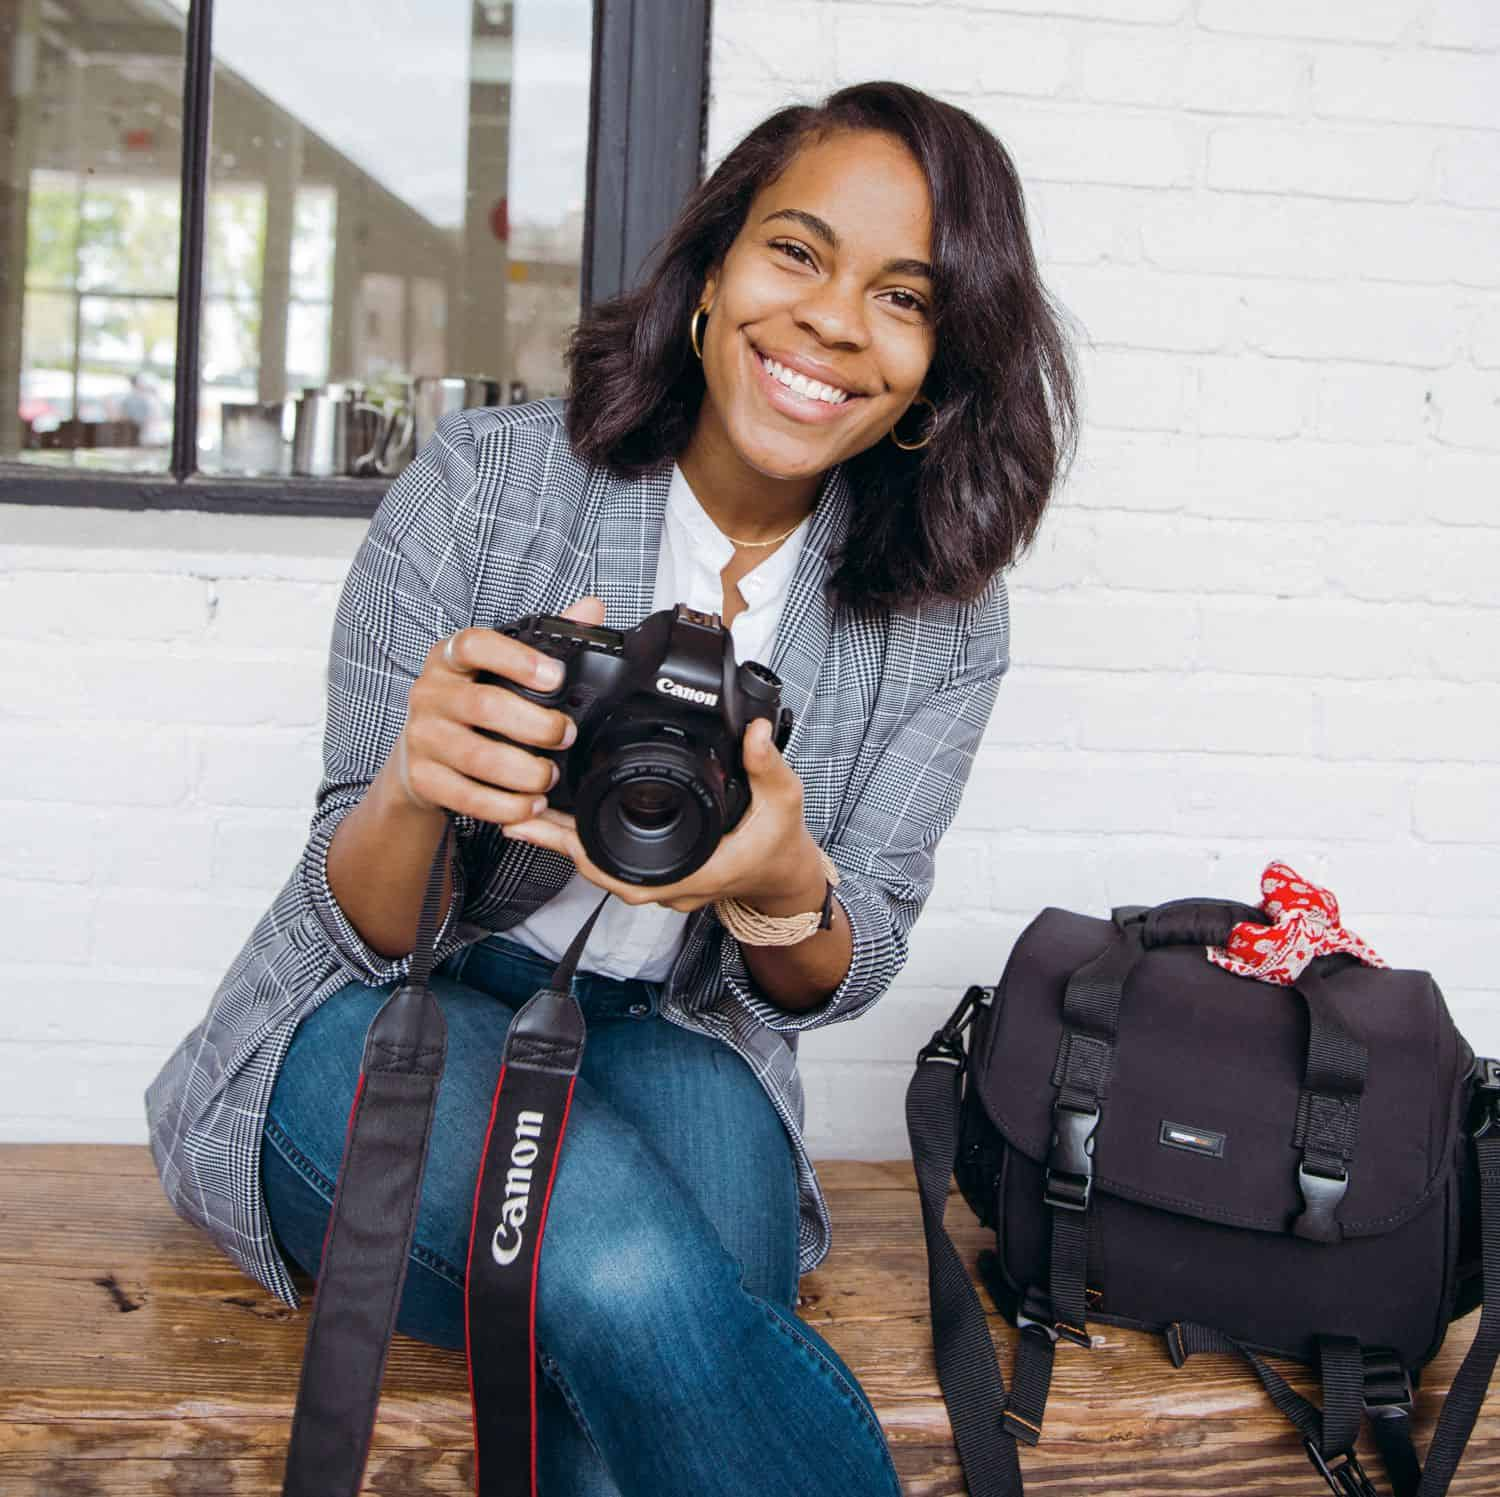 #ShootProofPro: 7 Stories for Days When You Think You Suck (Portrait of photographer Tina J. Smith holding her camera.)